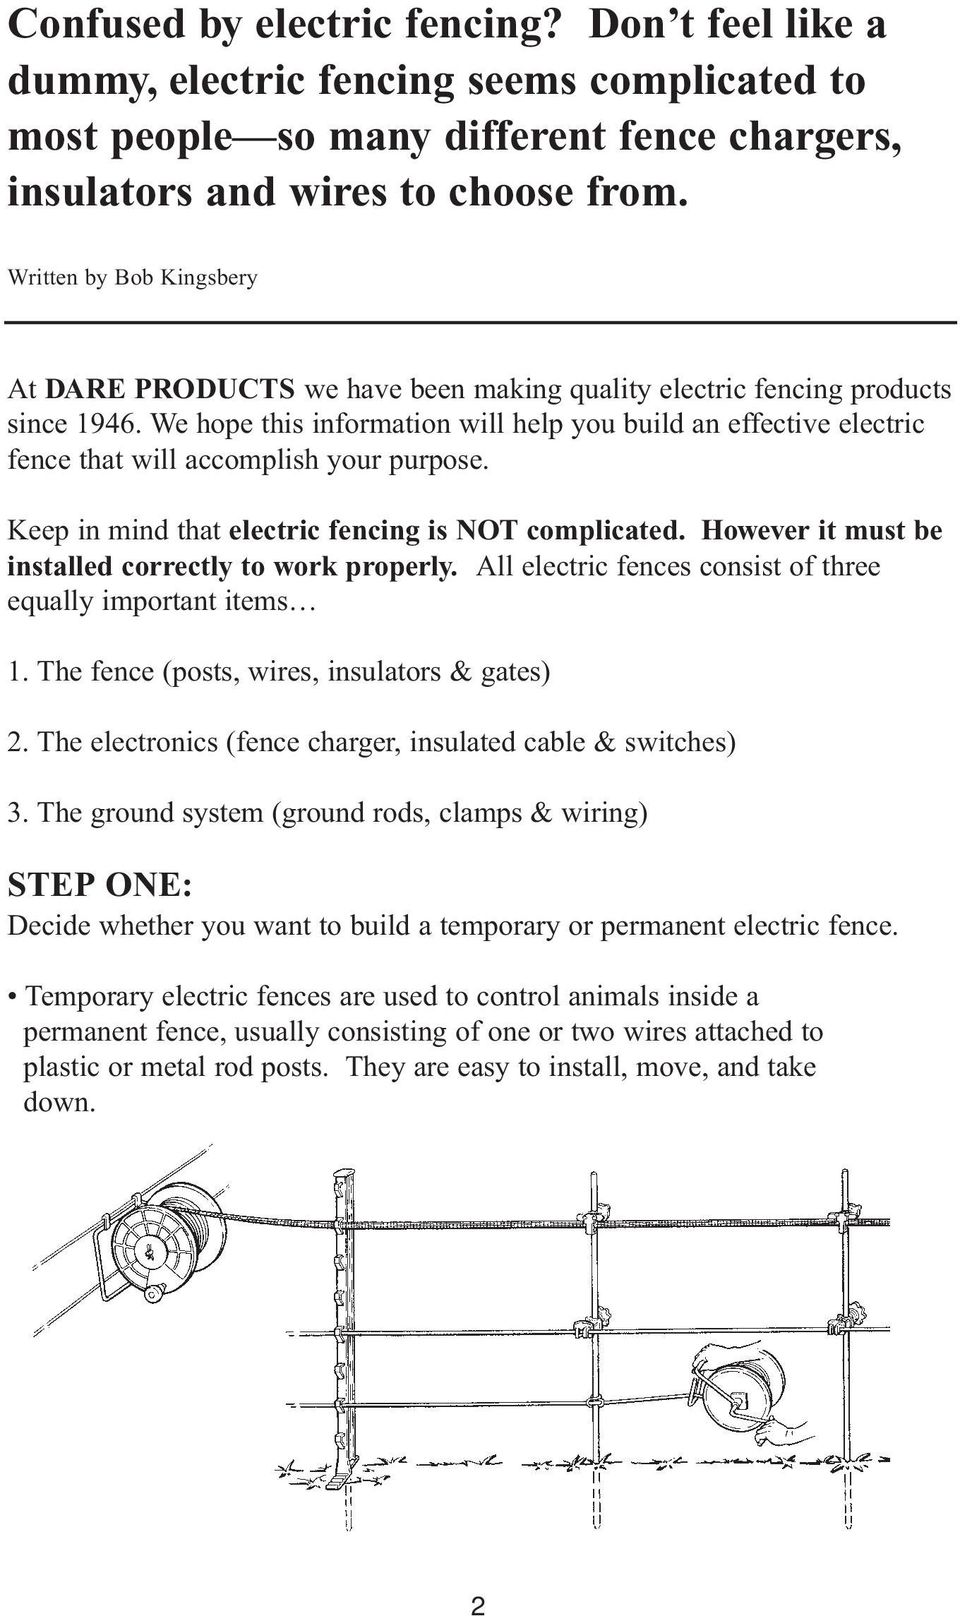 Electric Fencing Made Easy Pdf Fence Zapper Chargers We Hope This Information Will Help You Build An Effective That Accomplish Your